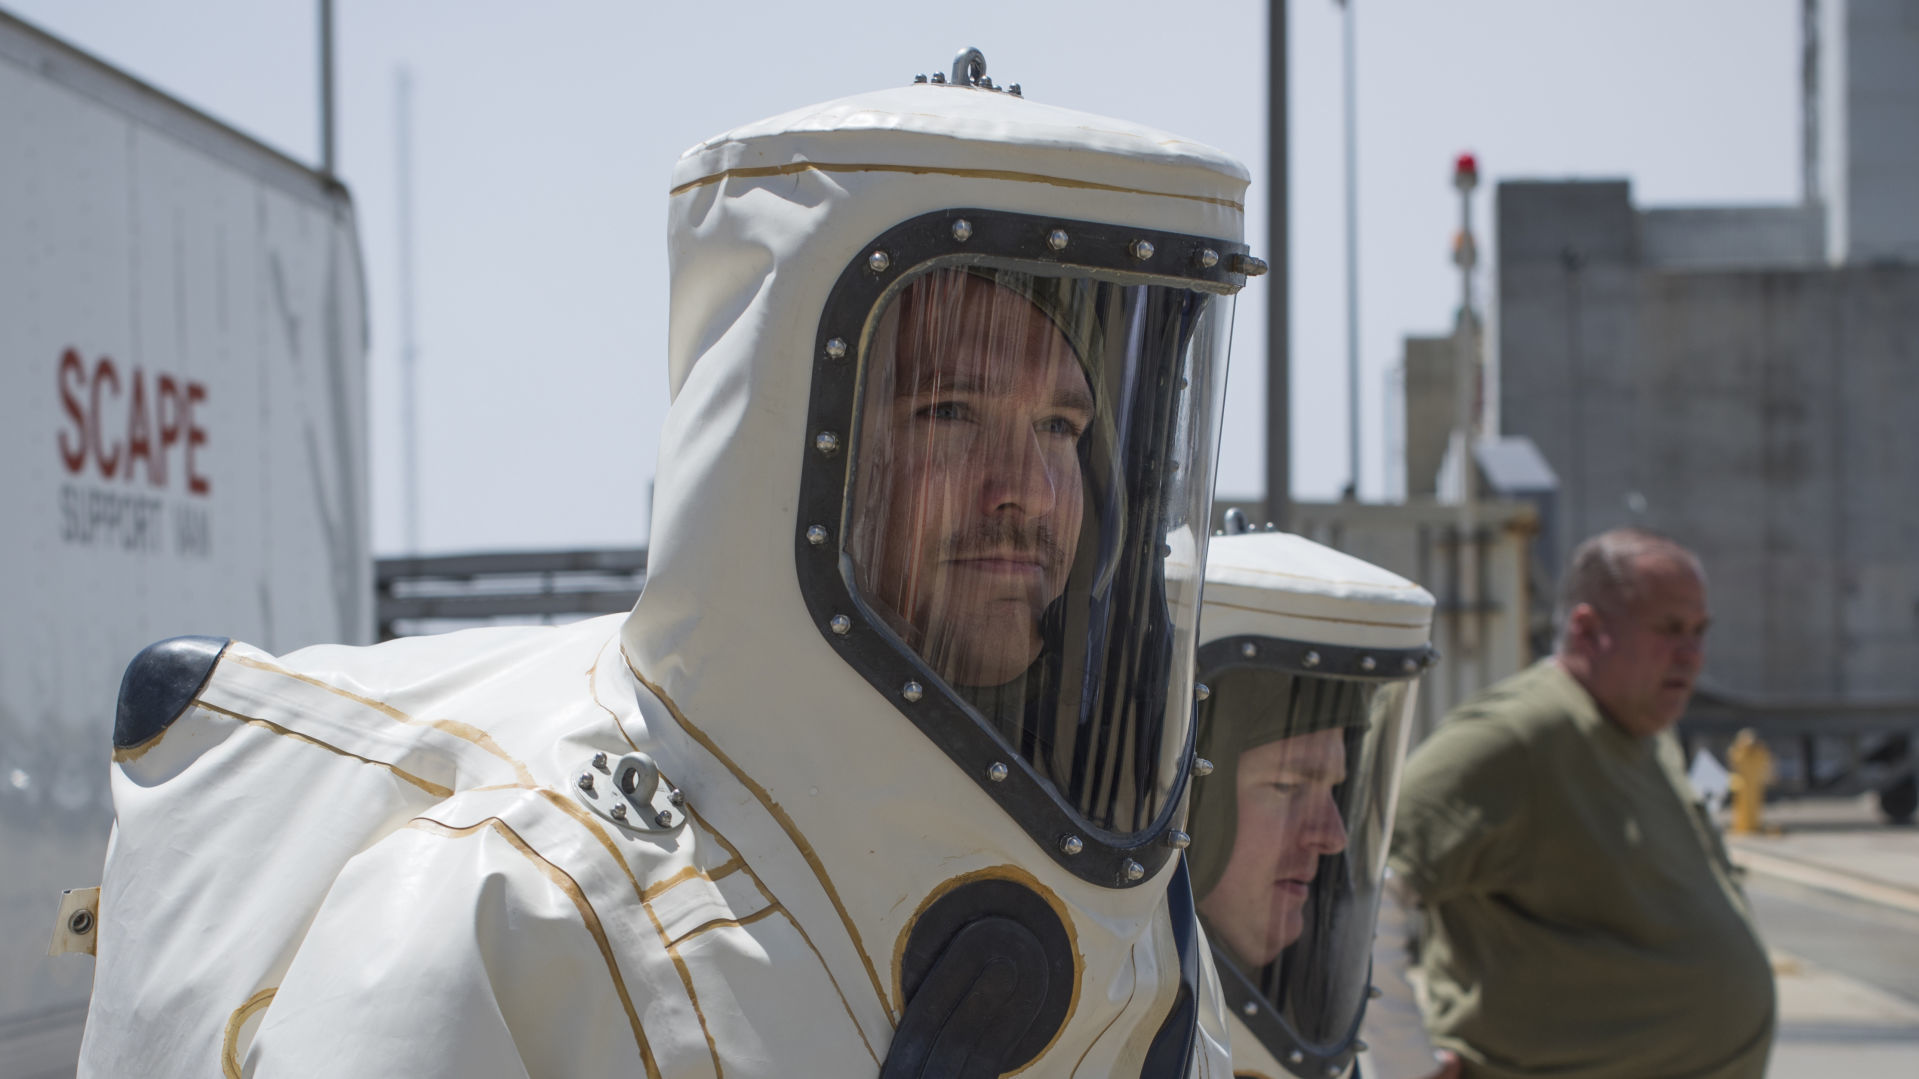 Airmen suit up for space mission readiness